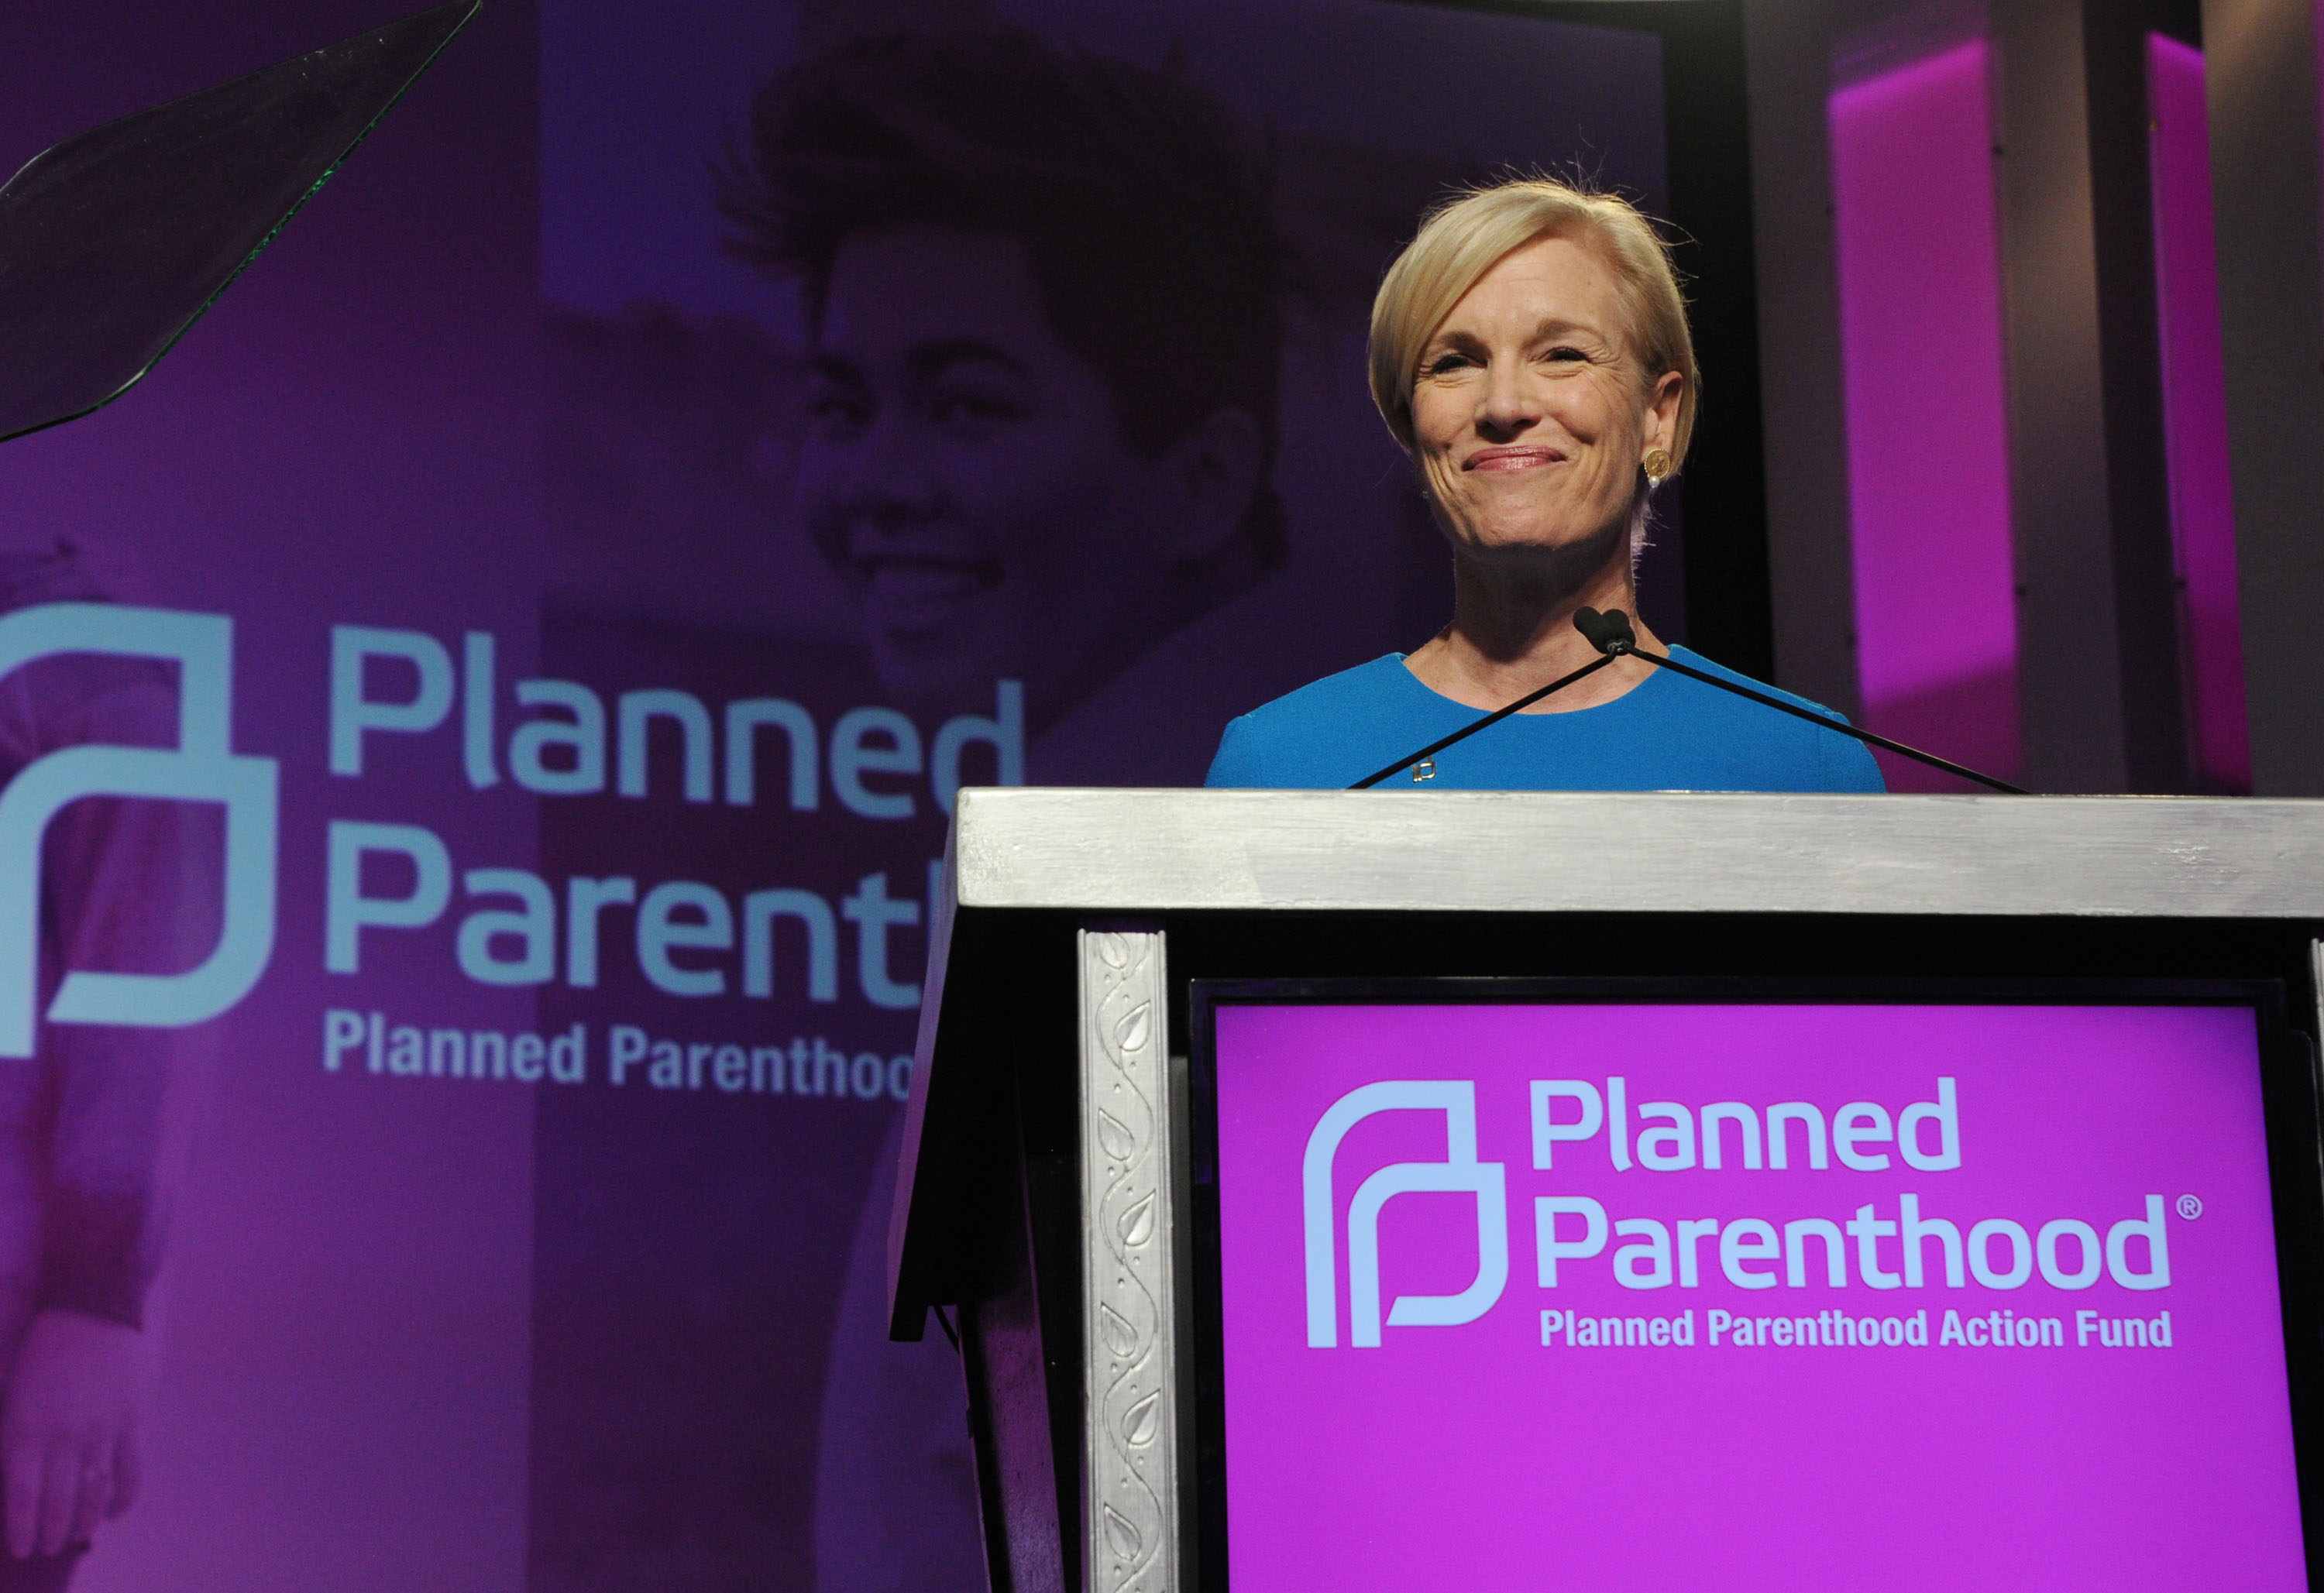 President and CEO Planned Parenthood Cecile Richards onstage at the 2016 Planned Parenthood Action Fund Membership Event held during the Planned Parenthood National Convention at Washington Hilton on June 10, 2016 in Washington, DC.